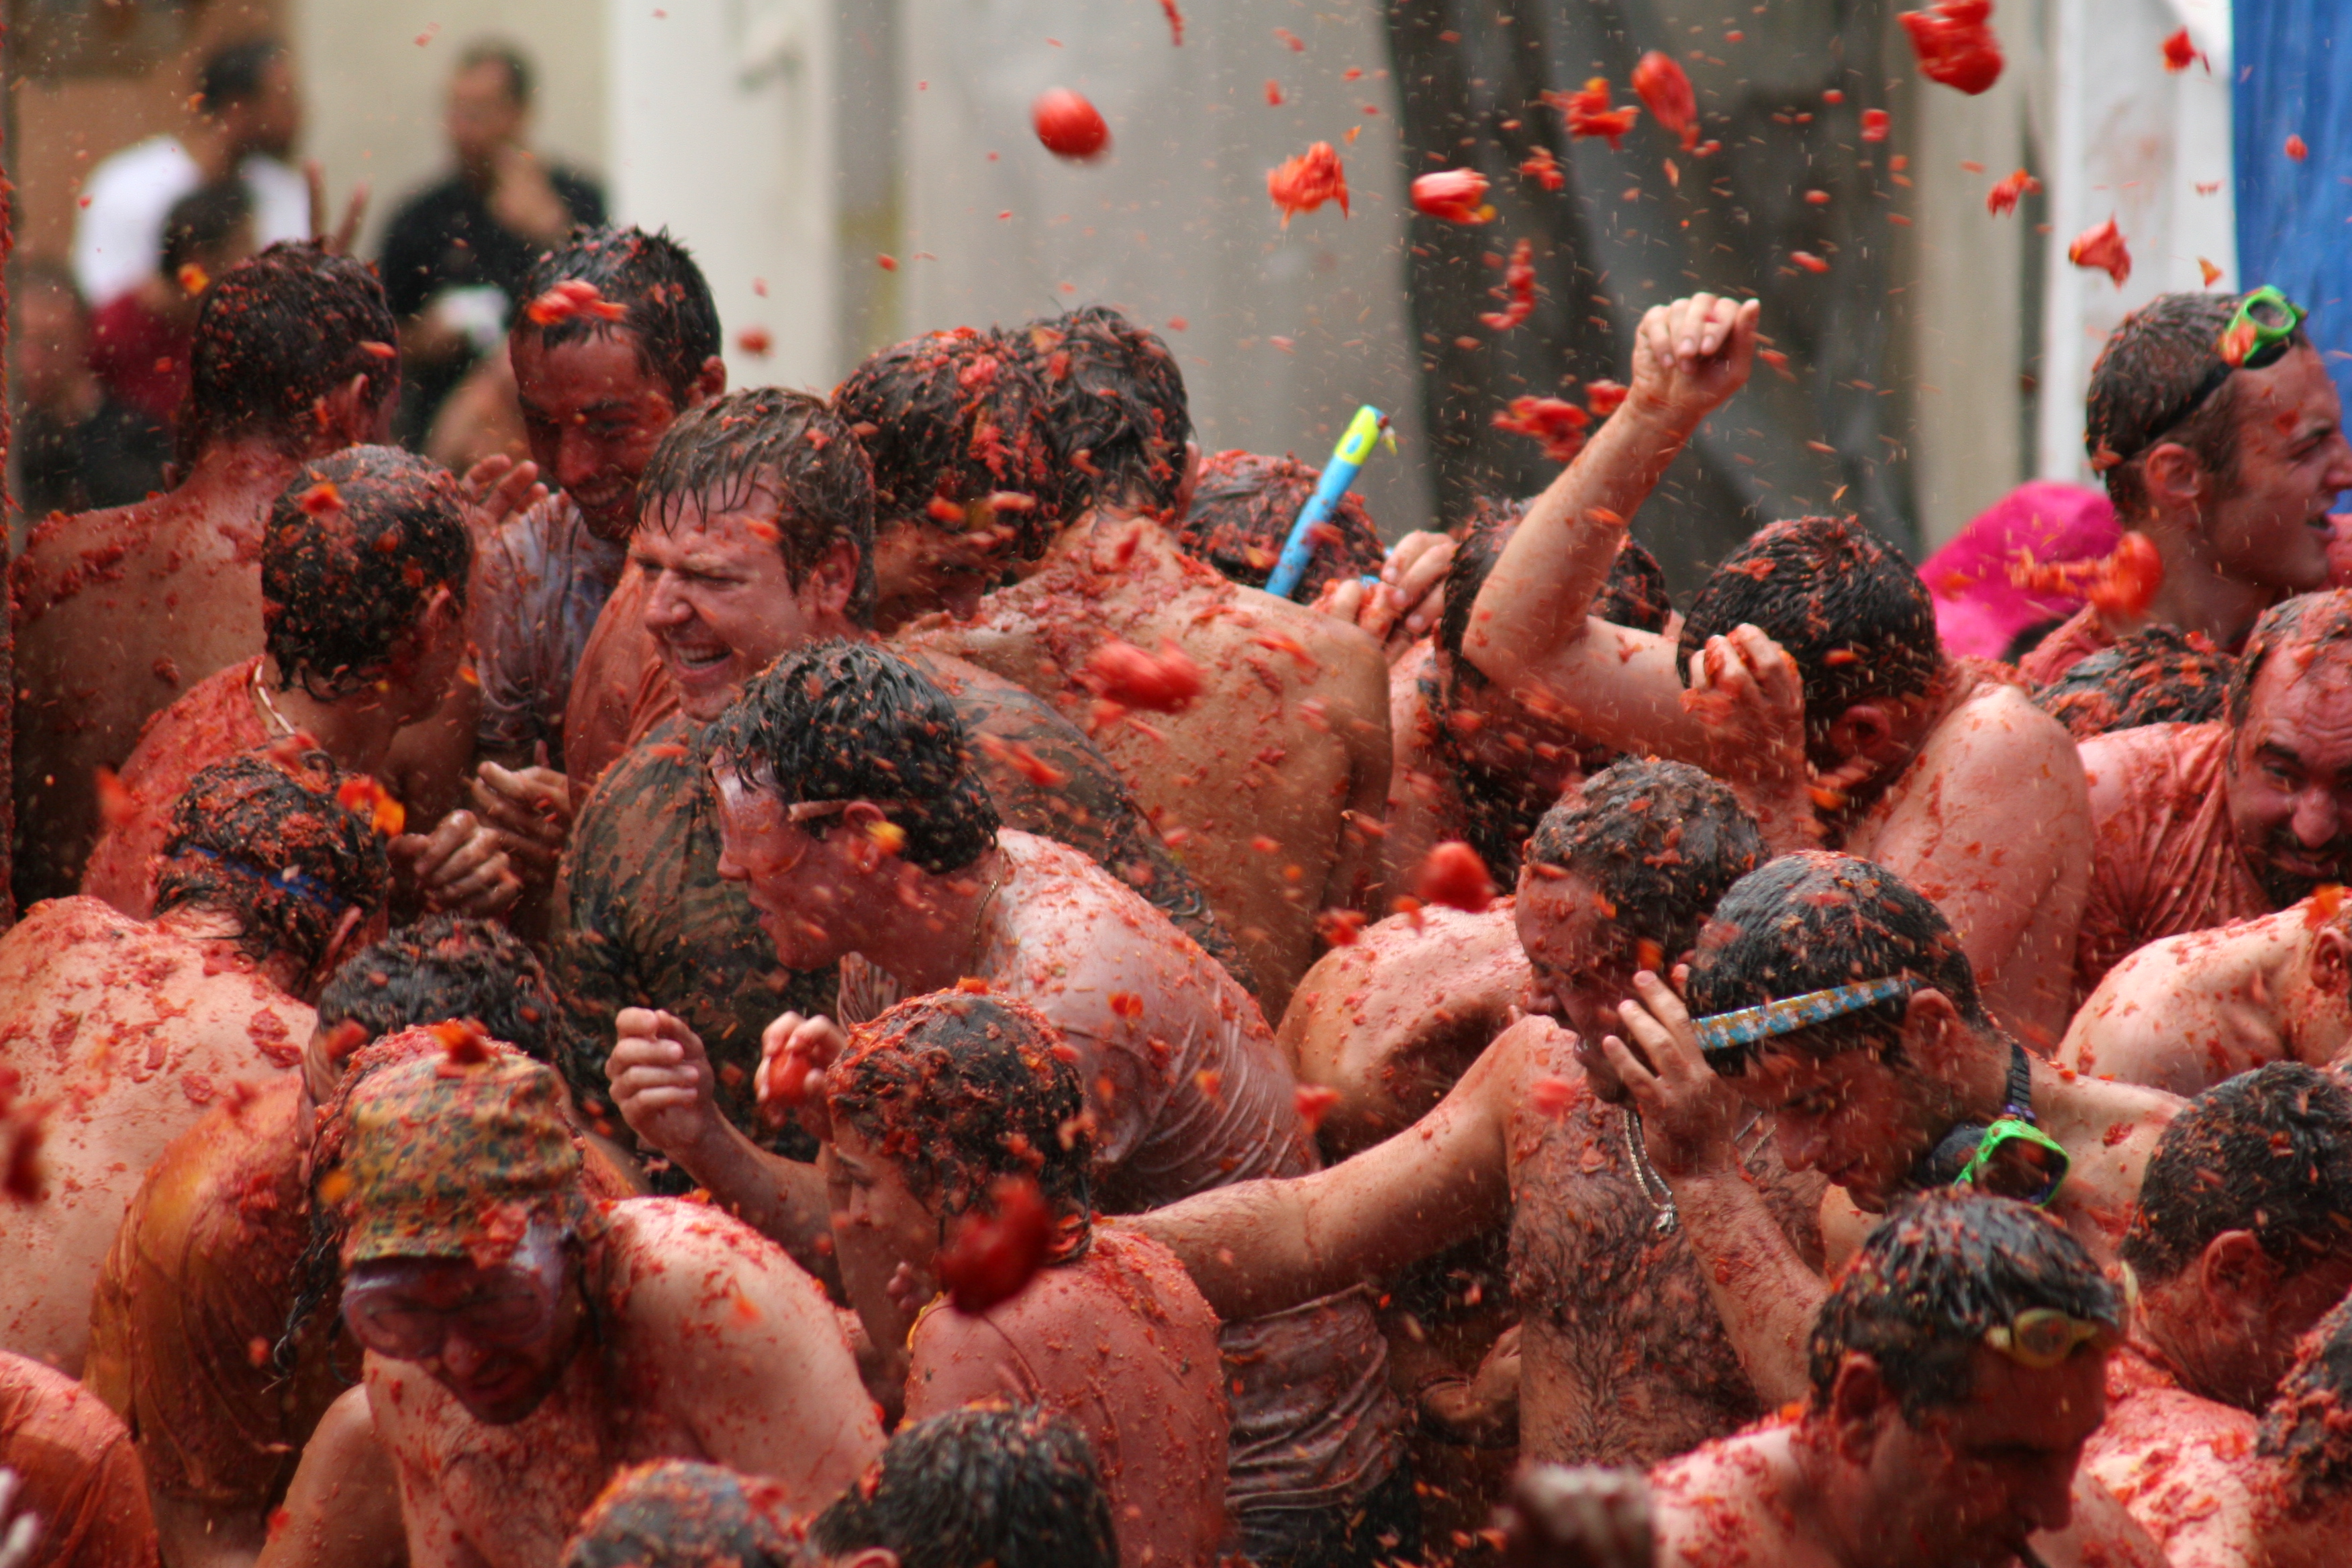 La Tomatina Festival - 8 Festivals From Around The World To Add To Your Bucket List